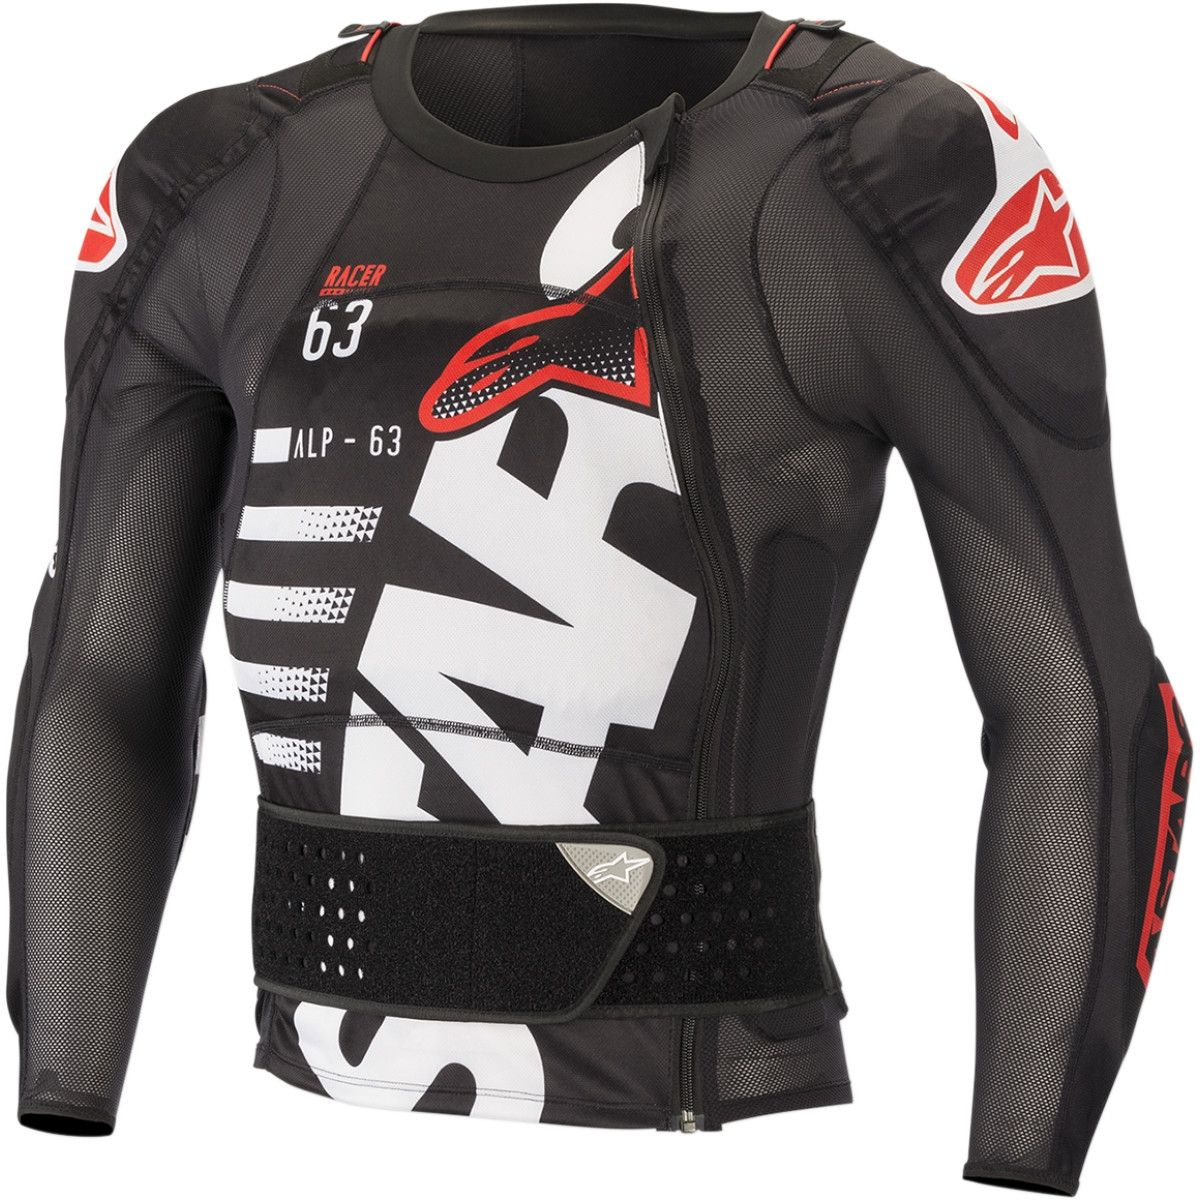 Alpinestars Protectievest Body Protector Sequence